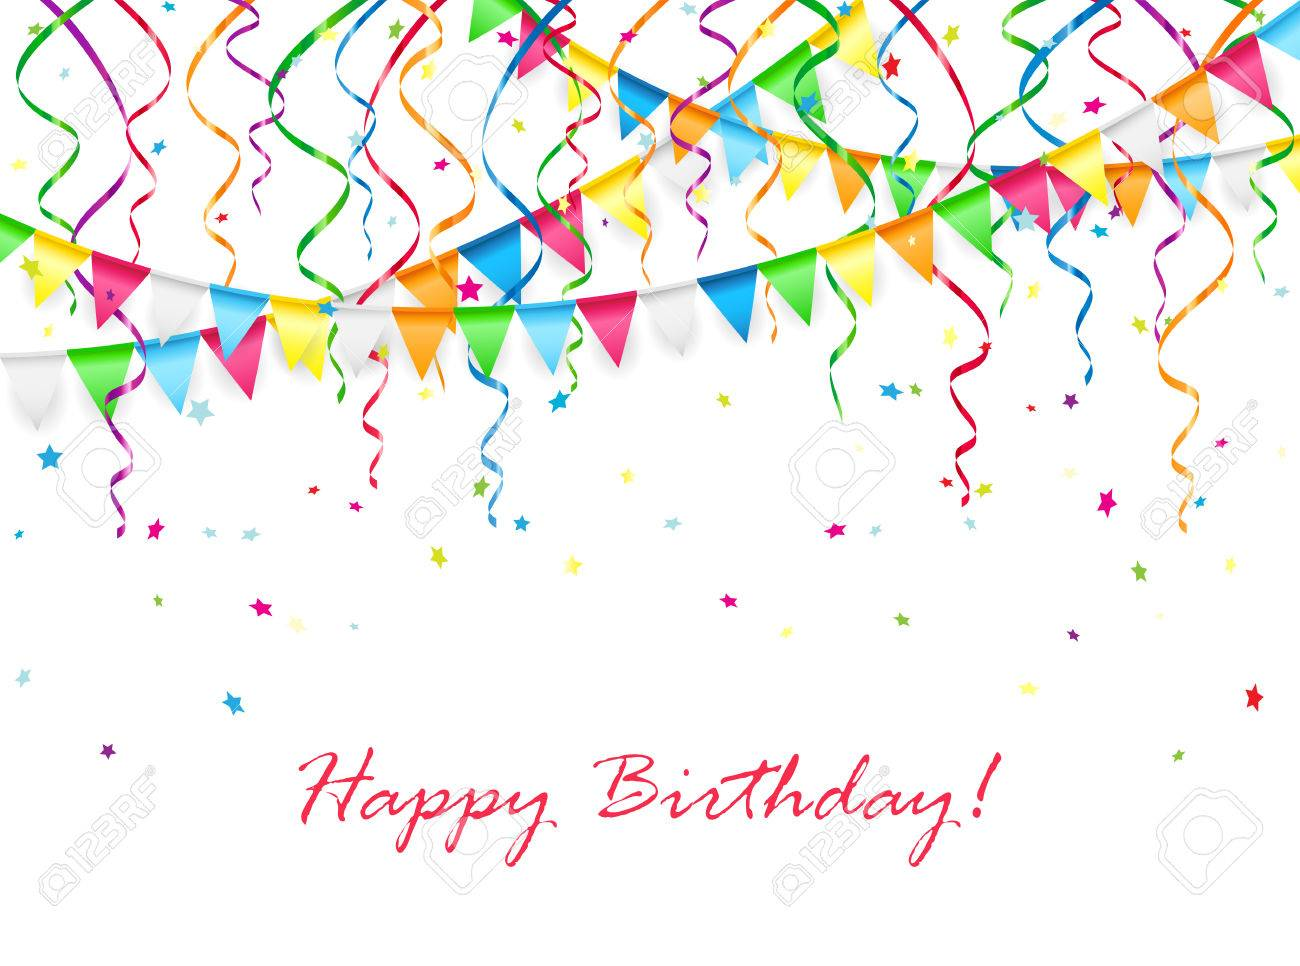 Birthday background with multicolored pennants, streamers and confetti, illustration. - 42613551